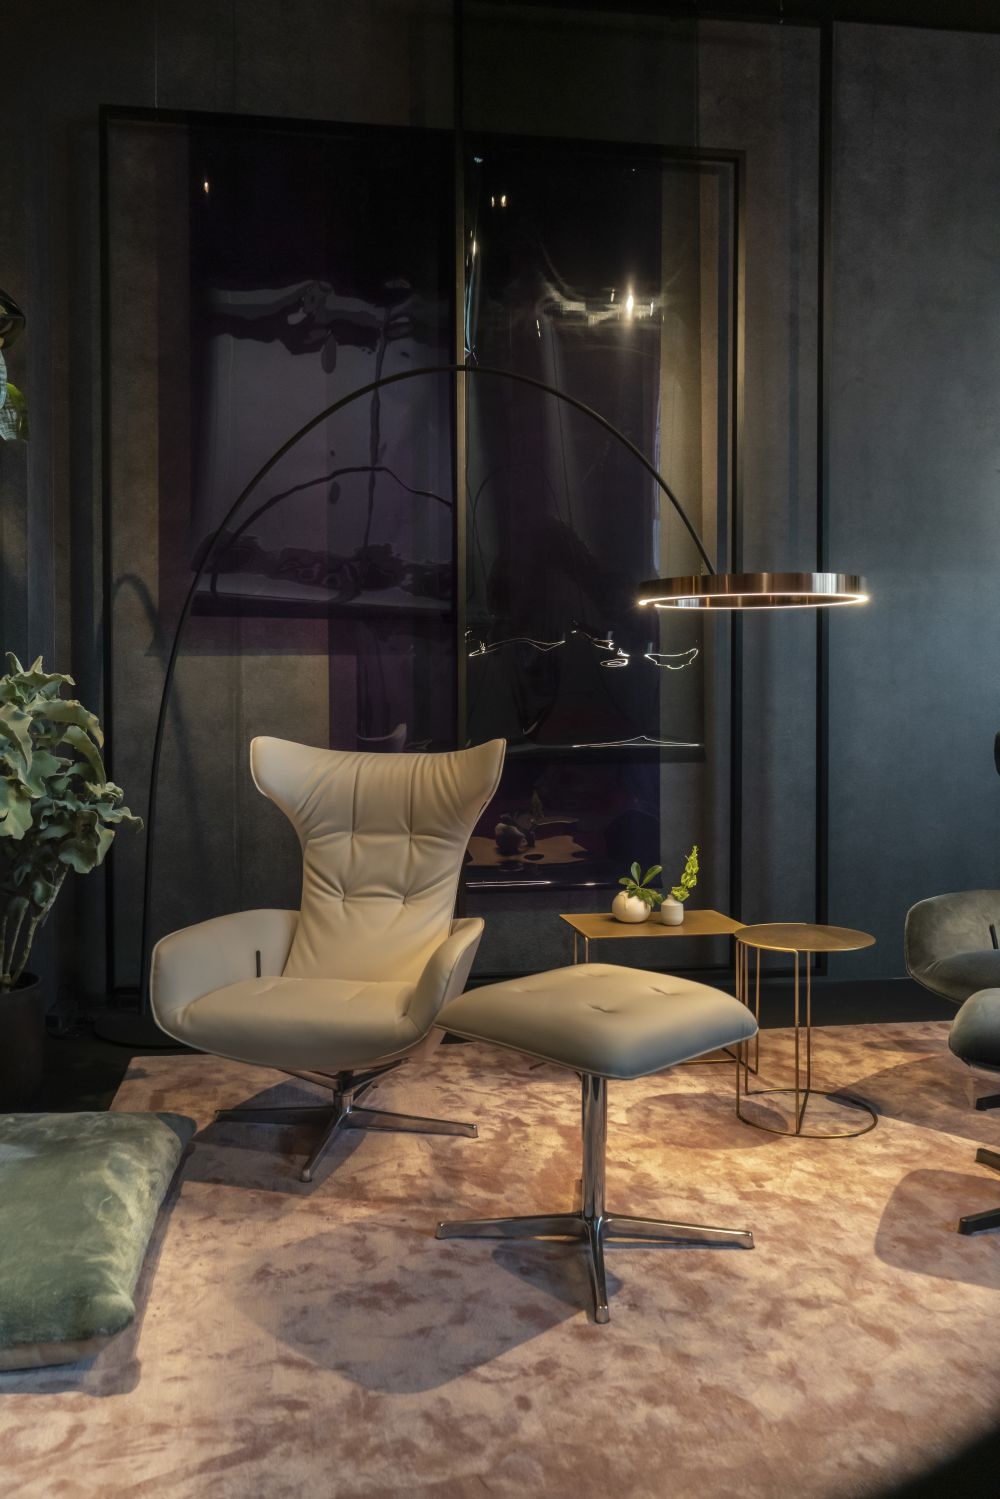 Add Light and Style With a Floor Lamp